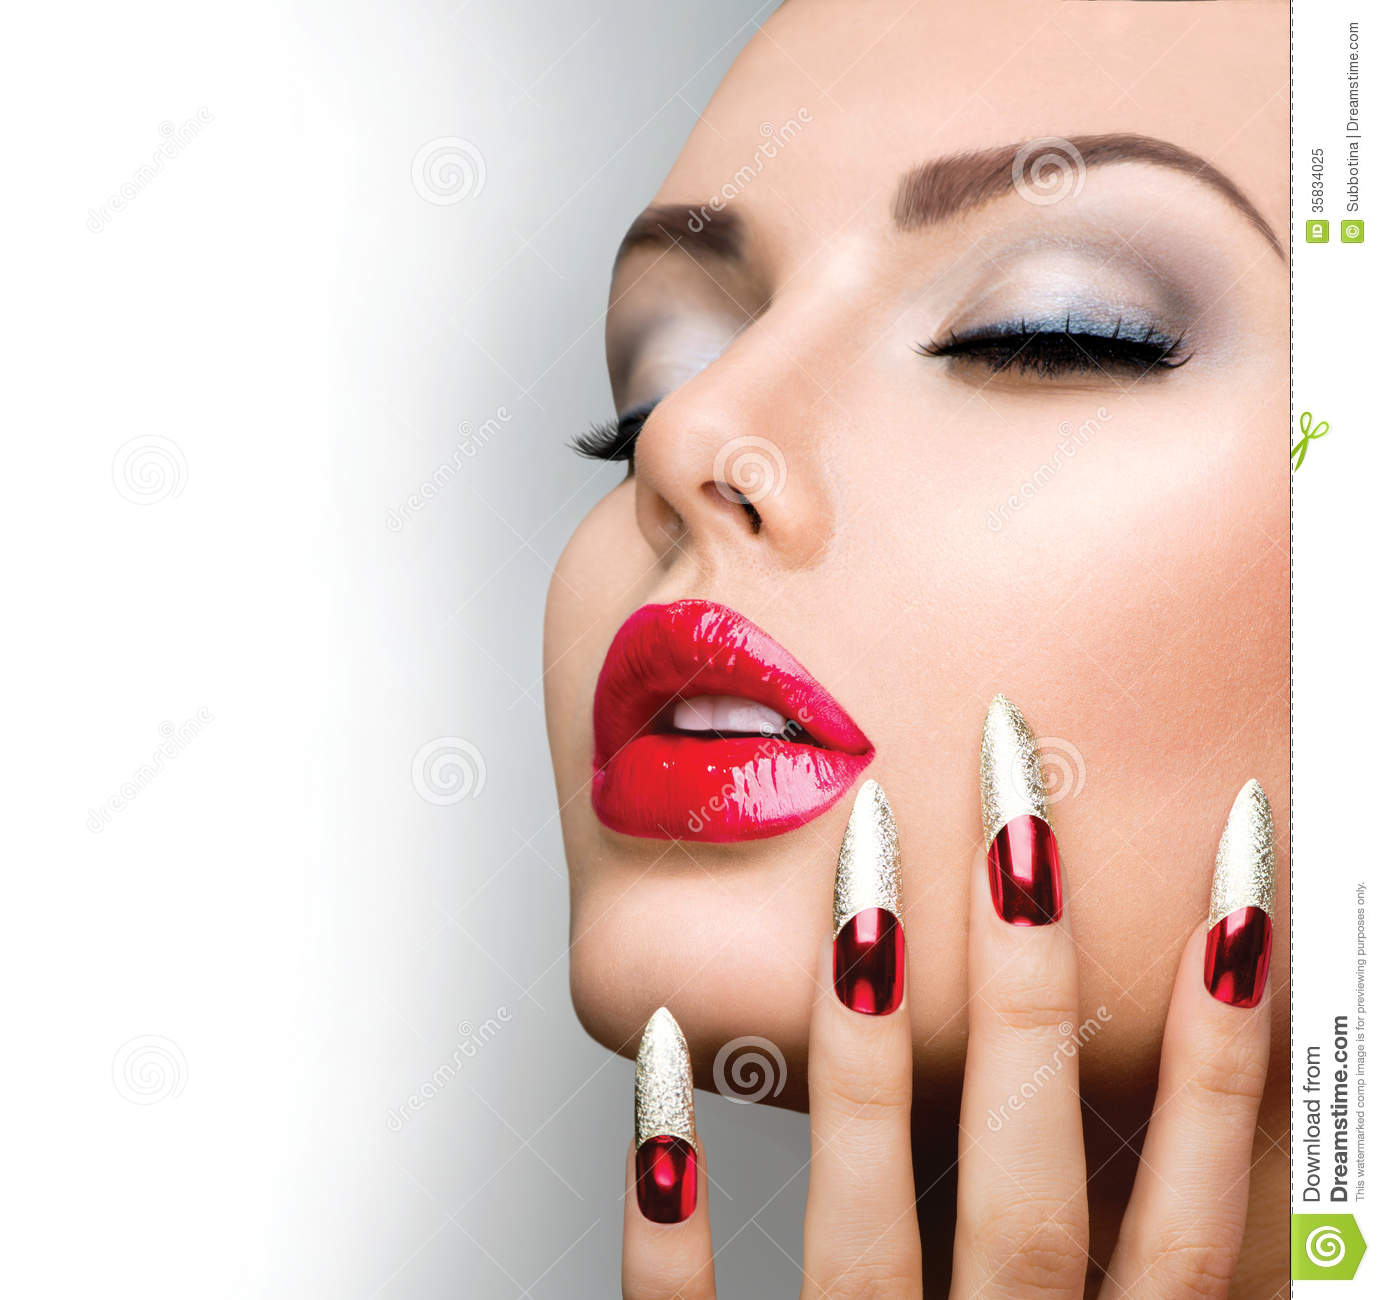 Fashion Beauty Model Girl Royalty Free Stock Photo